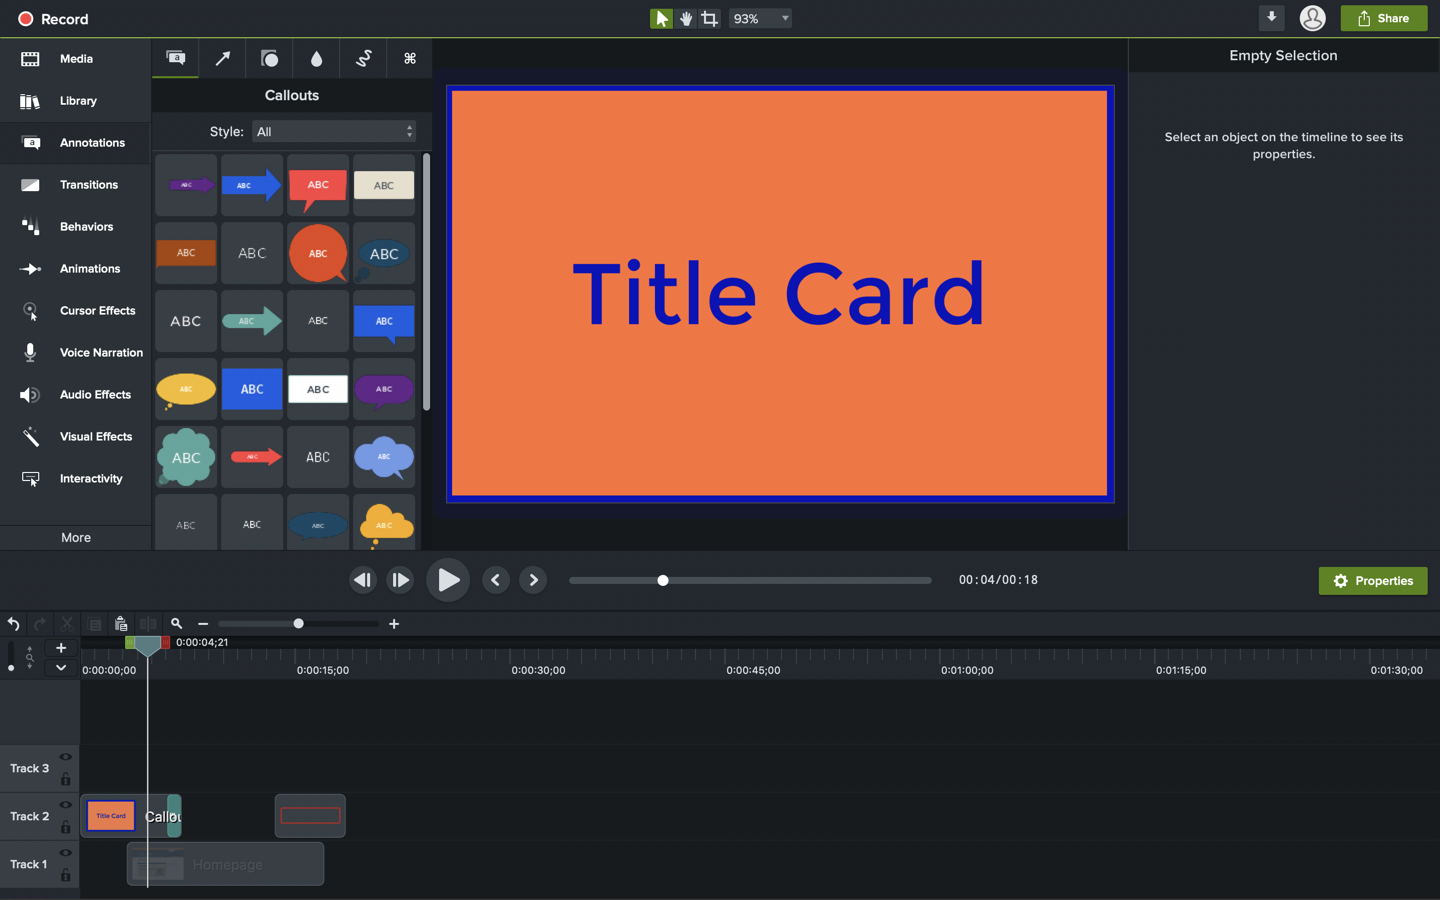 Image of a callout annotation being used as a title card in Camtasia